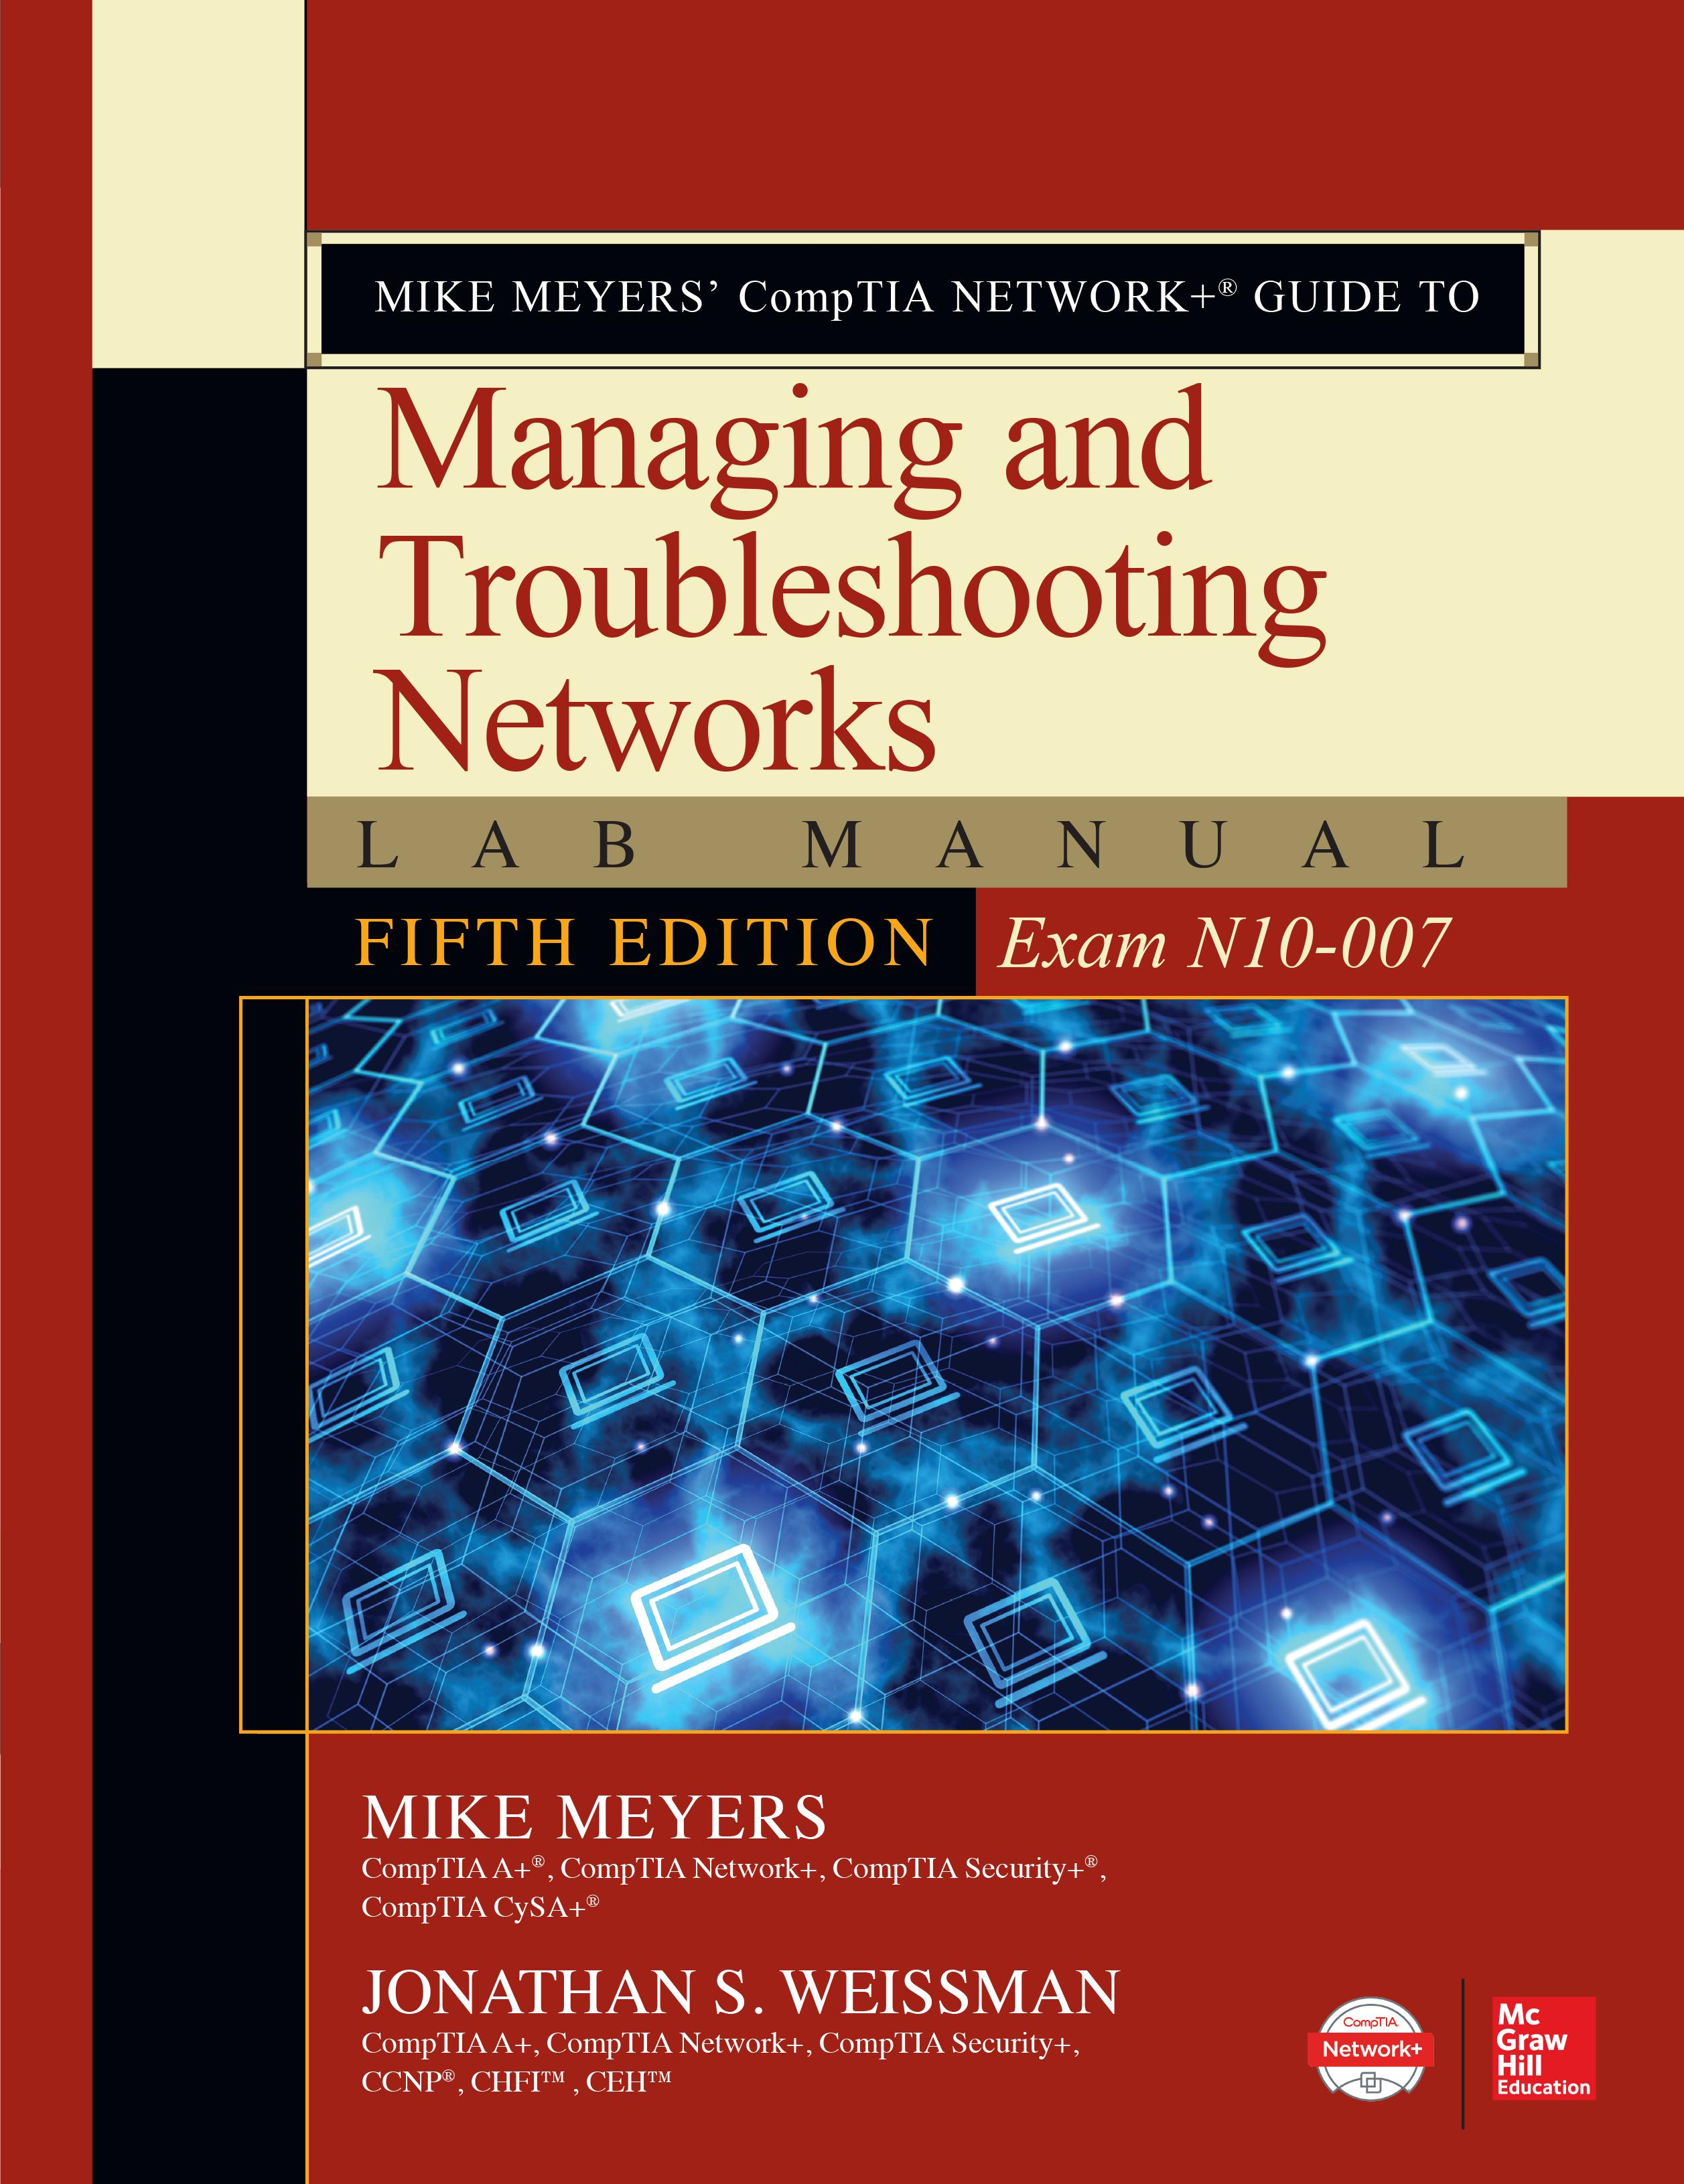 Mike Meyers' Comptia Network+ Guide to Managing and Troubleshooting  Networks Lab Manual, Fifth Edition (Exam N10-007) - Walmart.com